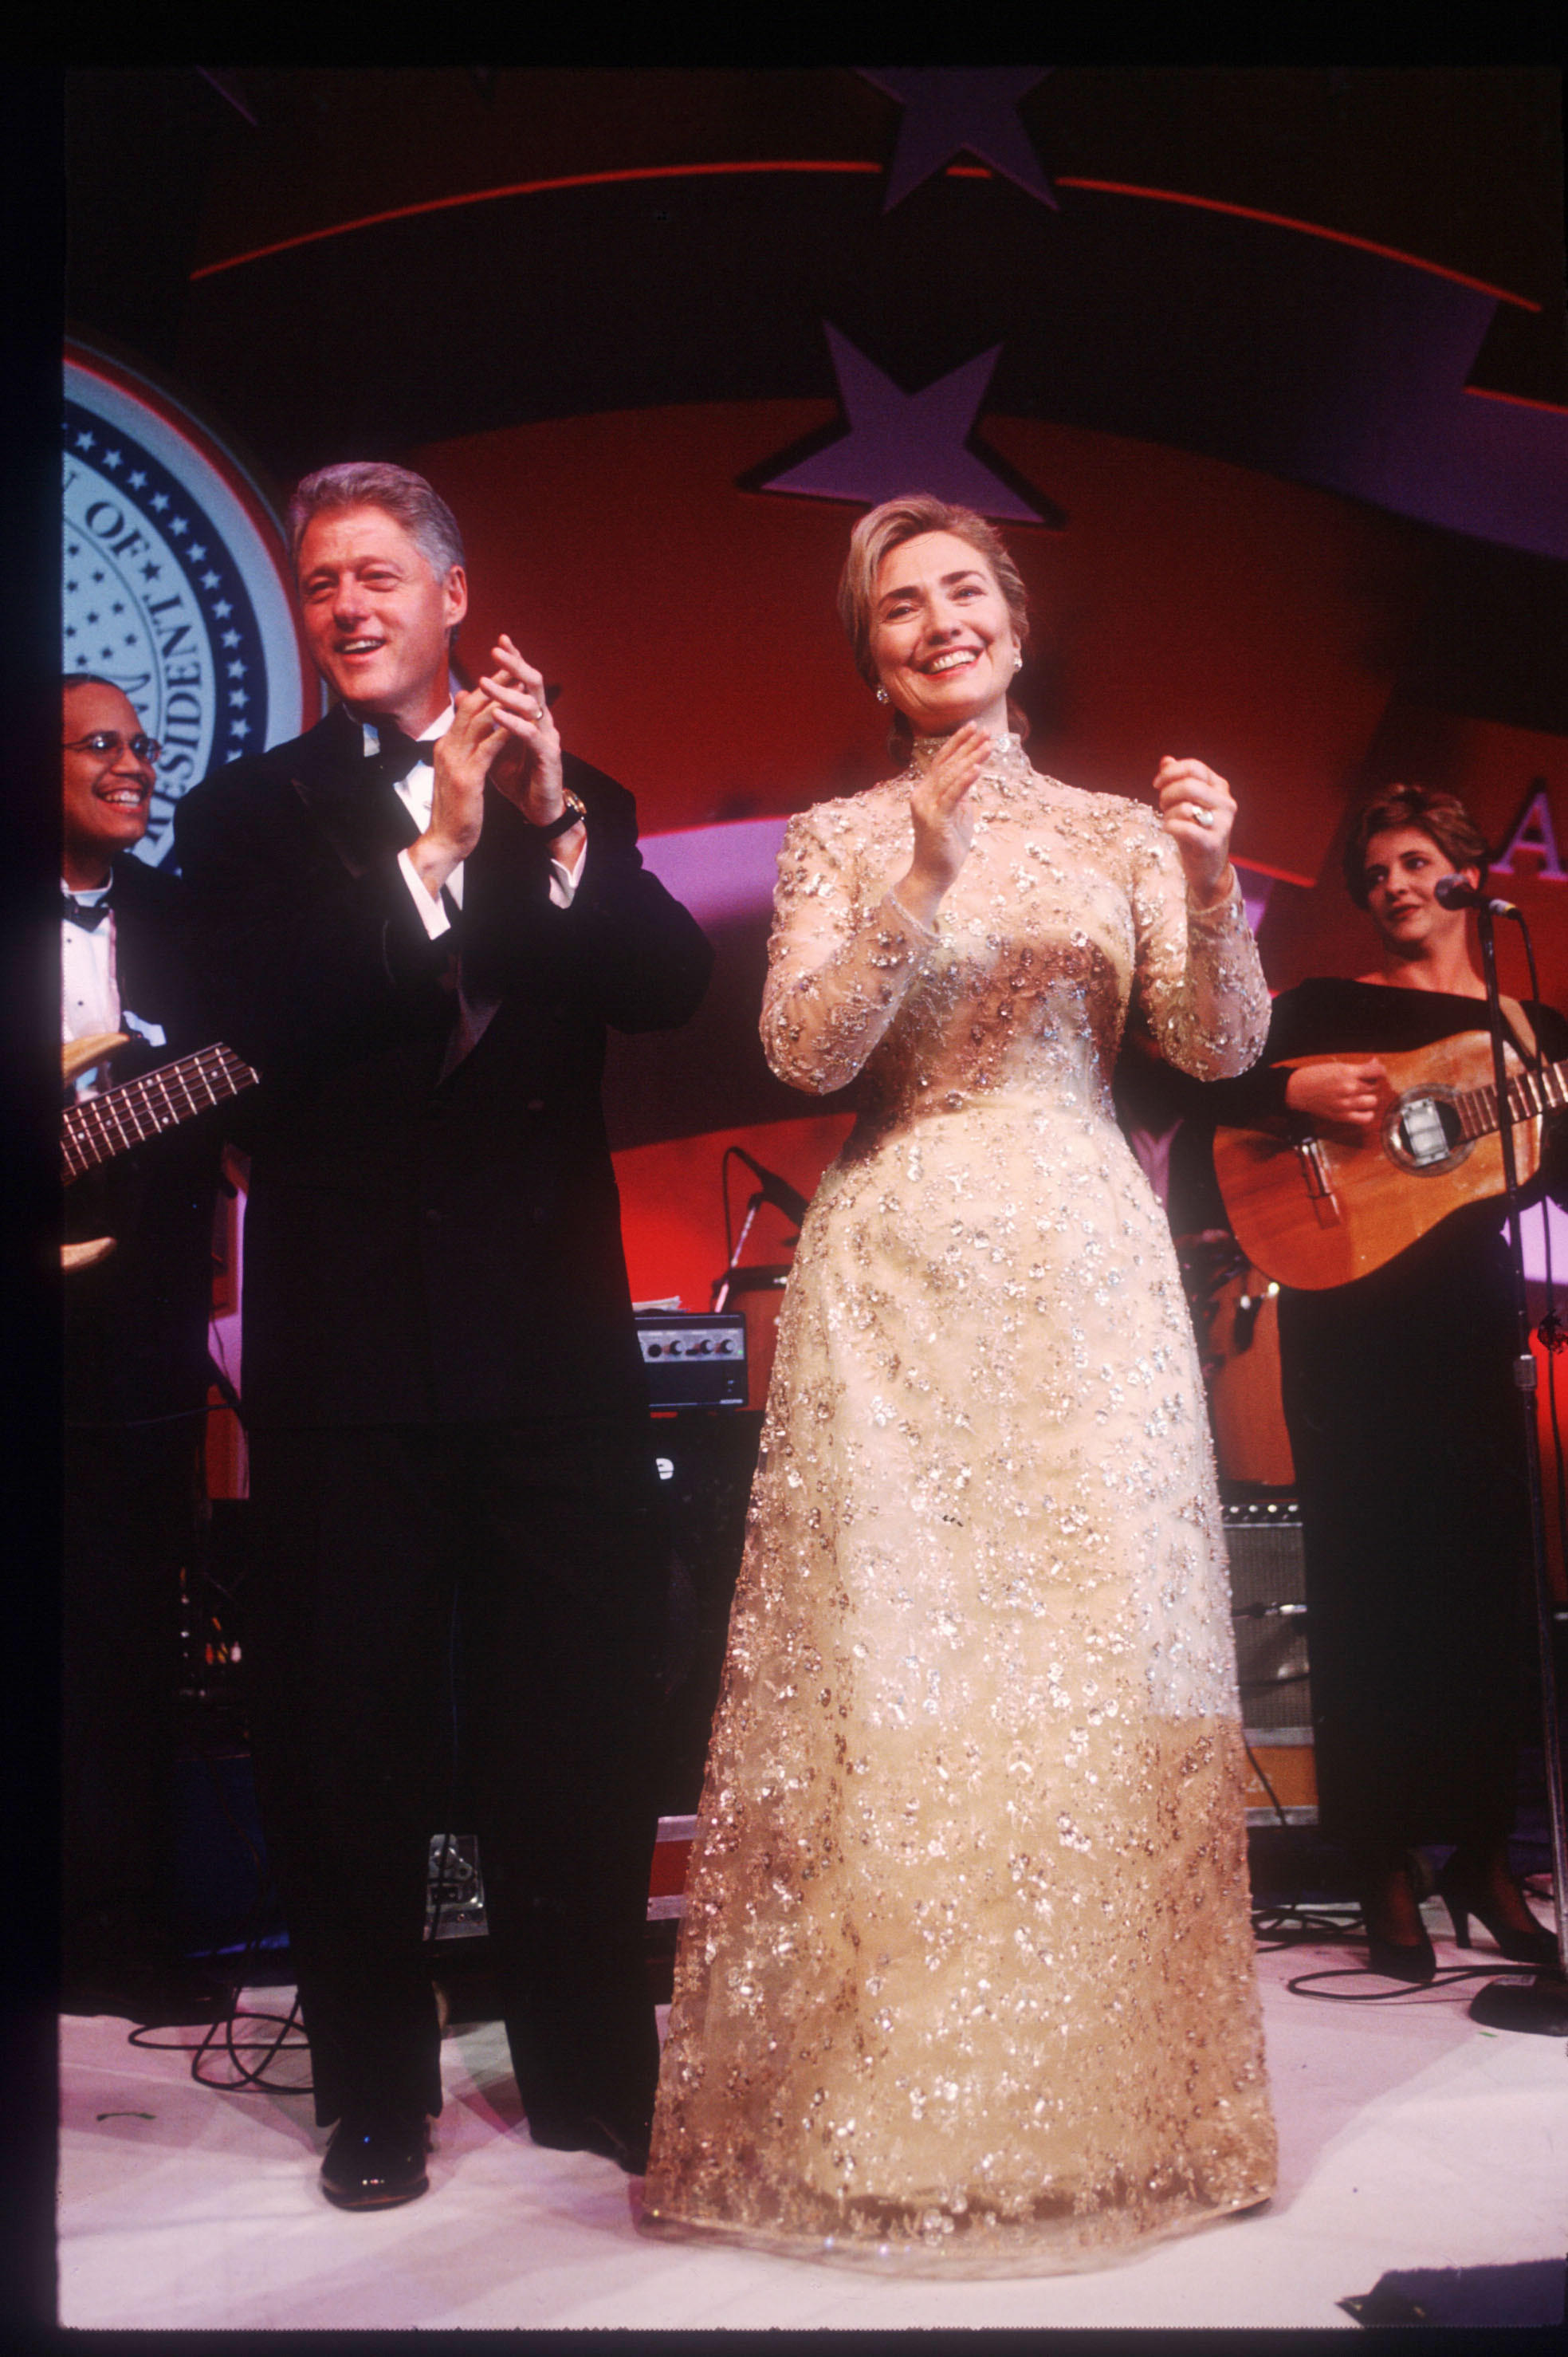 Hillary Clinton, Oscar de la Renta, 1997: Clinton wore this gold lace dress in 1997, but she first met the designer at the Kennedy Center in Dec. 1993, when he pointed out that she was wearing one of his dresses, which she claims she did not realize at the time. De la Renta has described his  friend  Hillary as  a symbol of where women want to go.